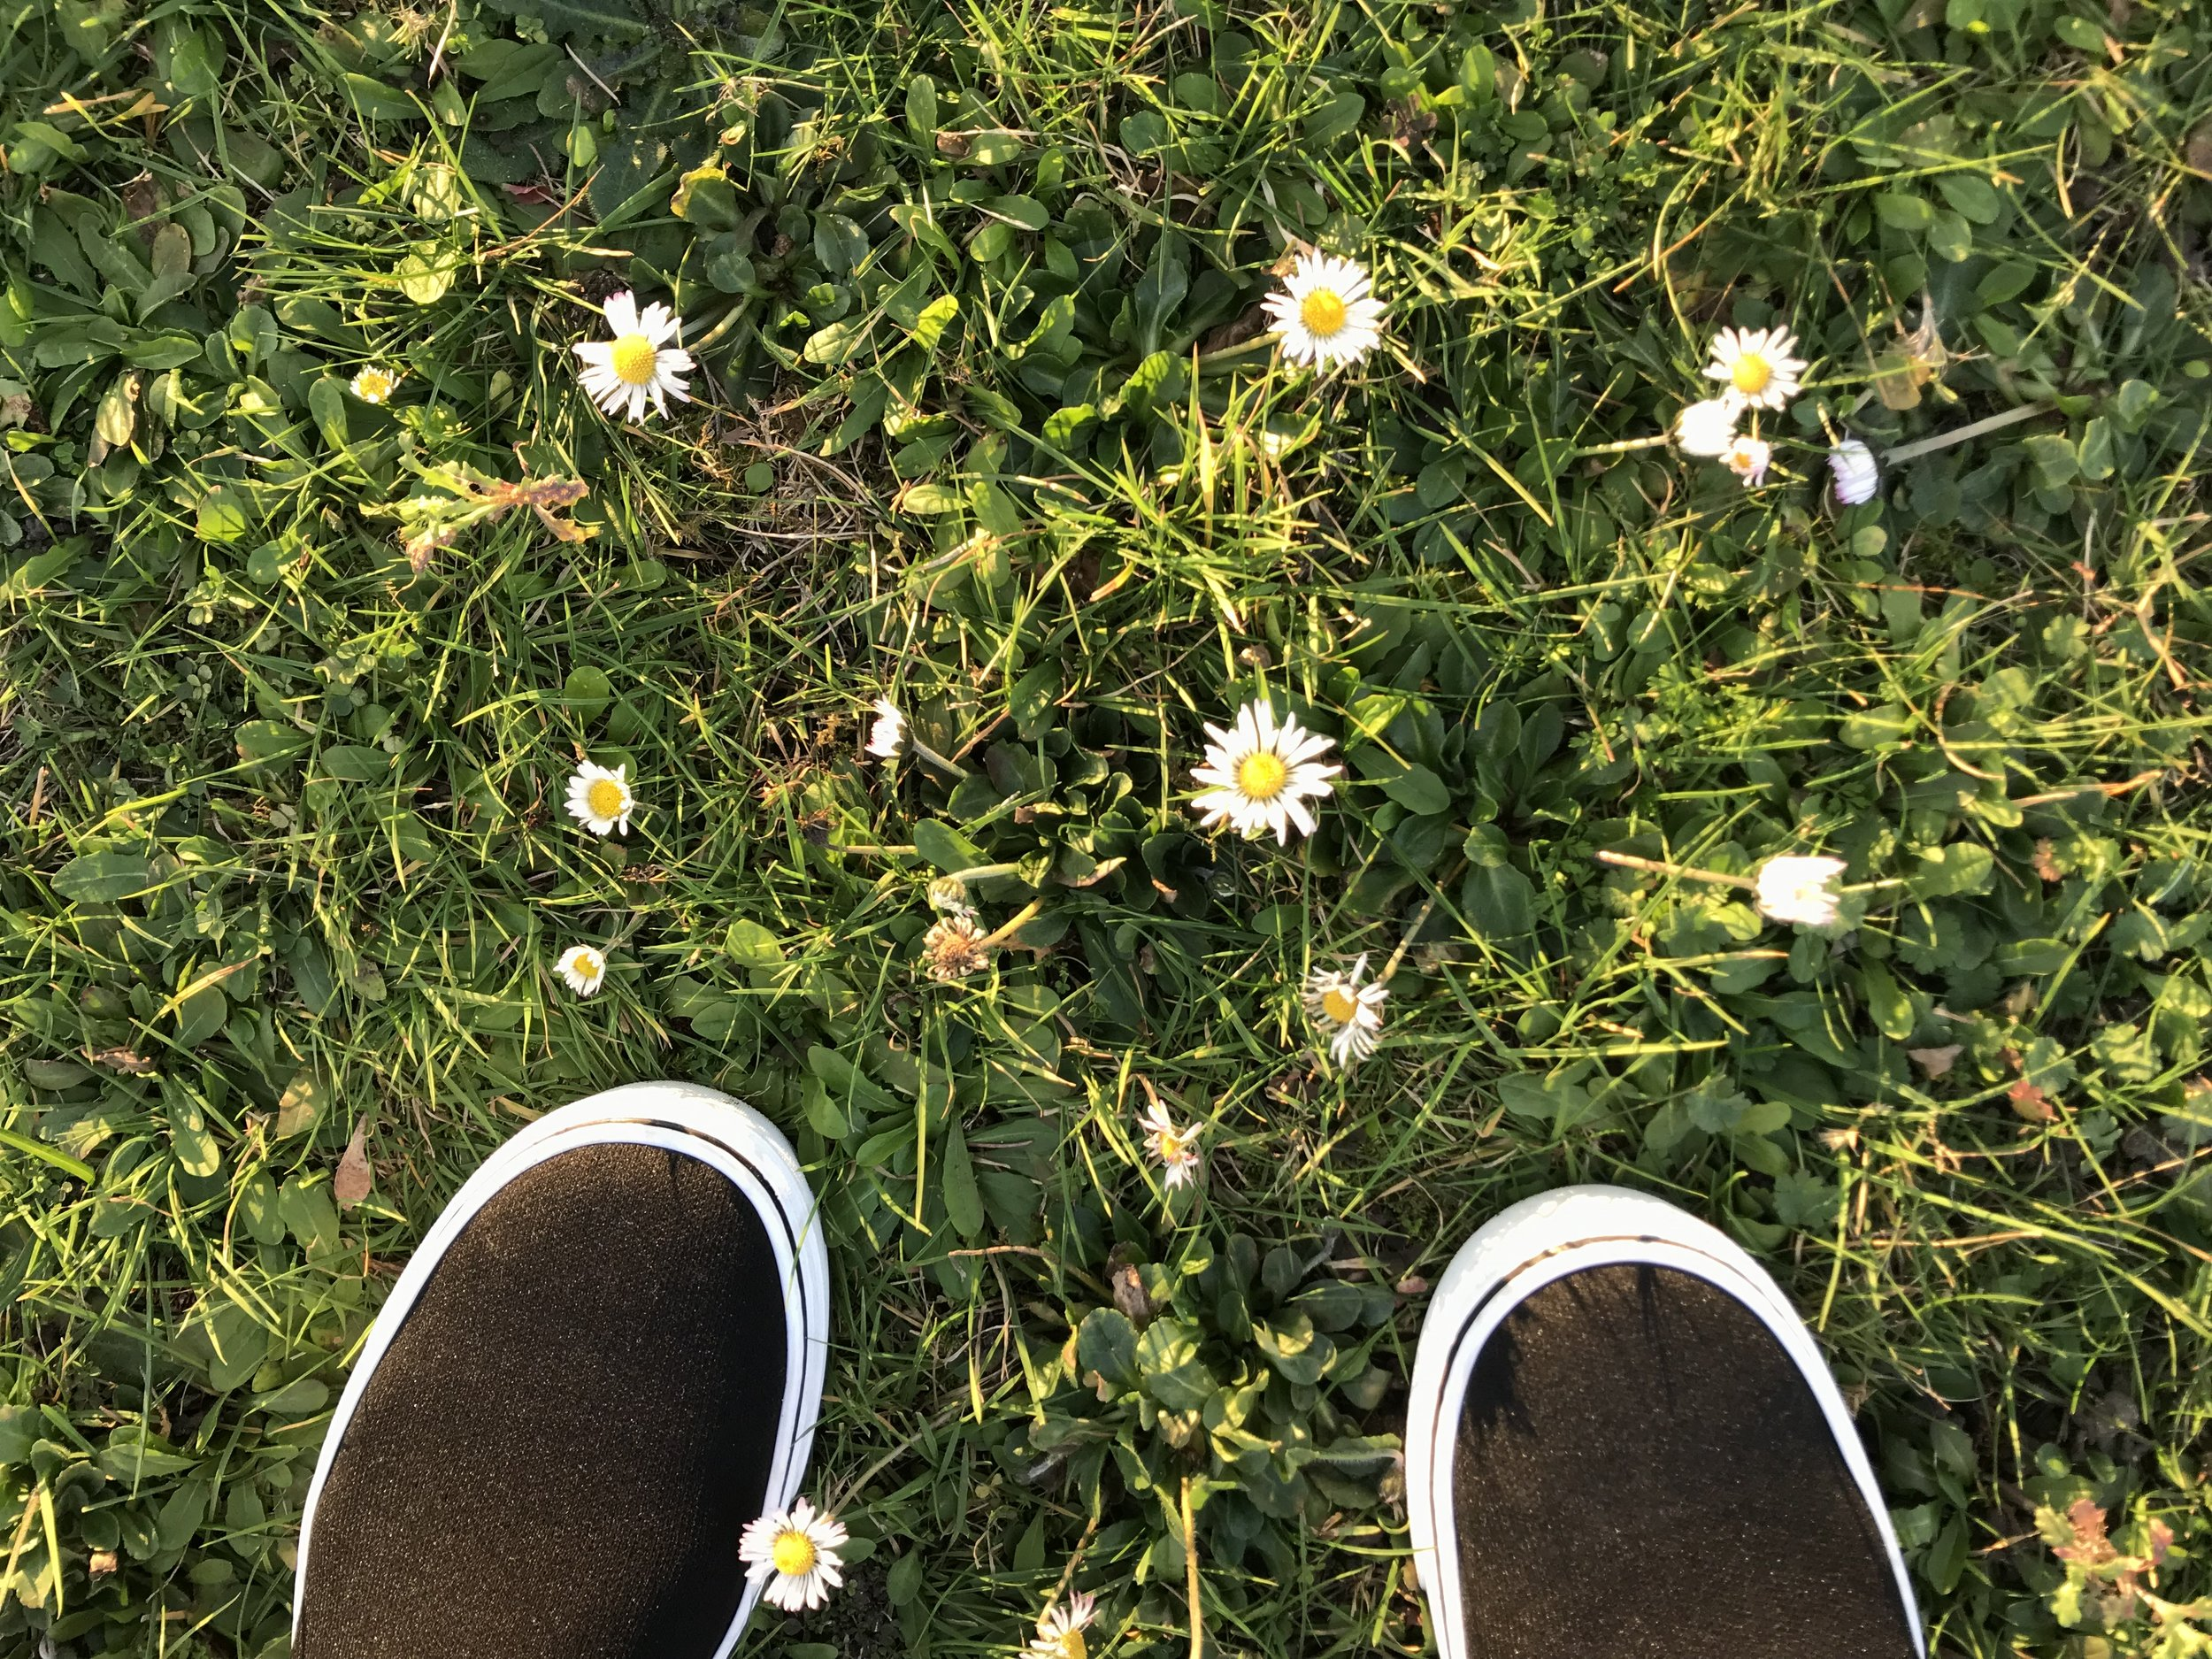 I'm only here for a couple of hours but am making just enough time to jump into nature and smell the roses (or in this case, little daisies). Tbh a friend dragged me out. I prefer eating ramen, listening to Dusty Speingfield, and watching the Golden Girls in private.